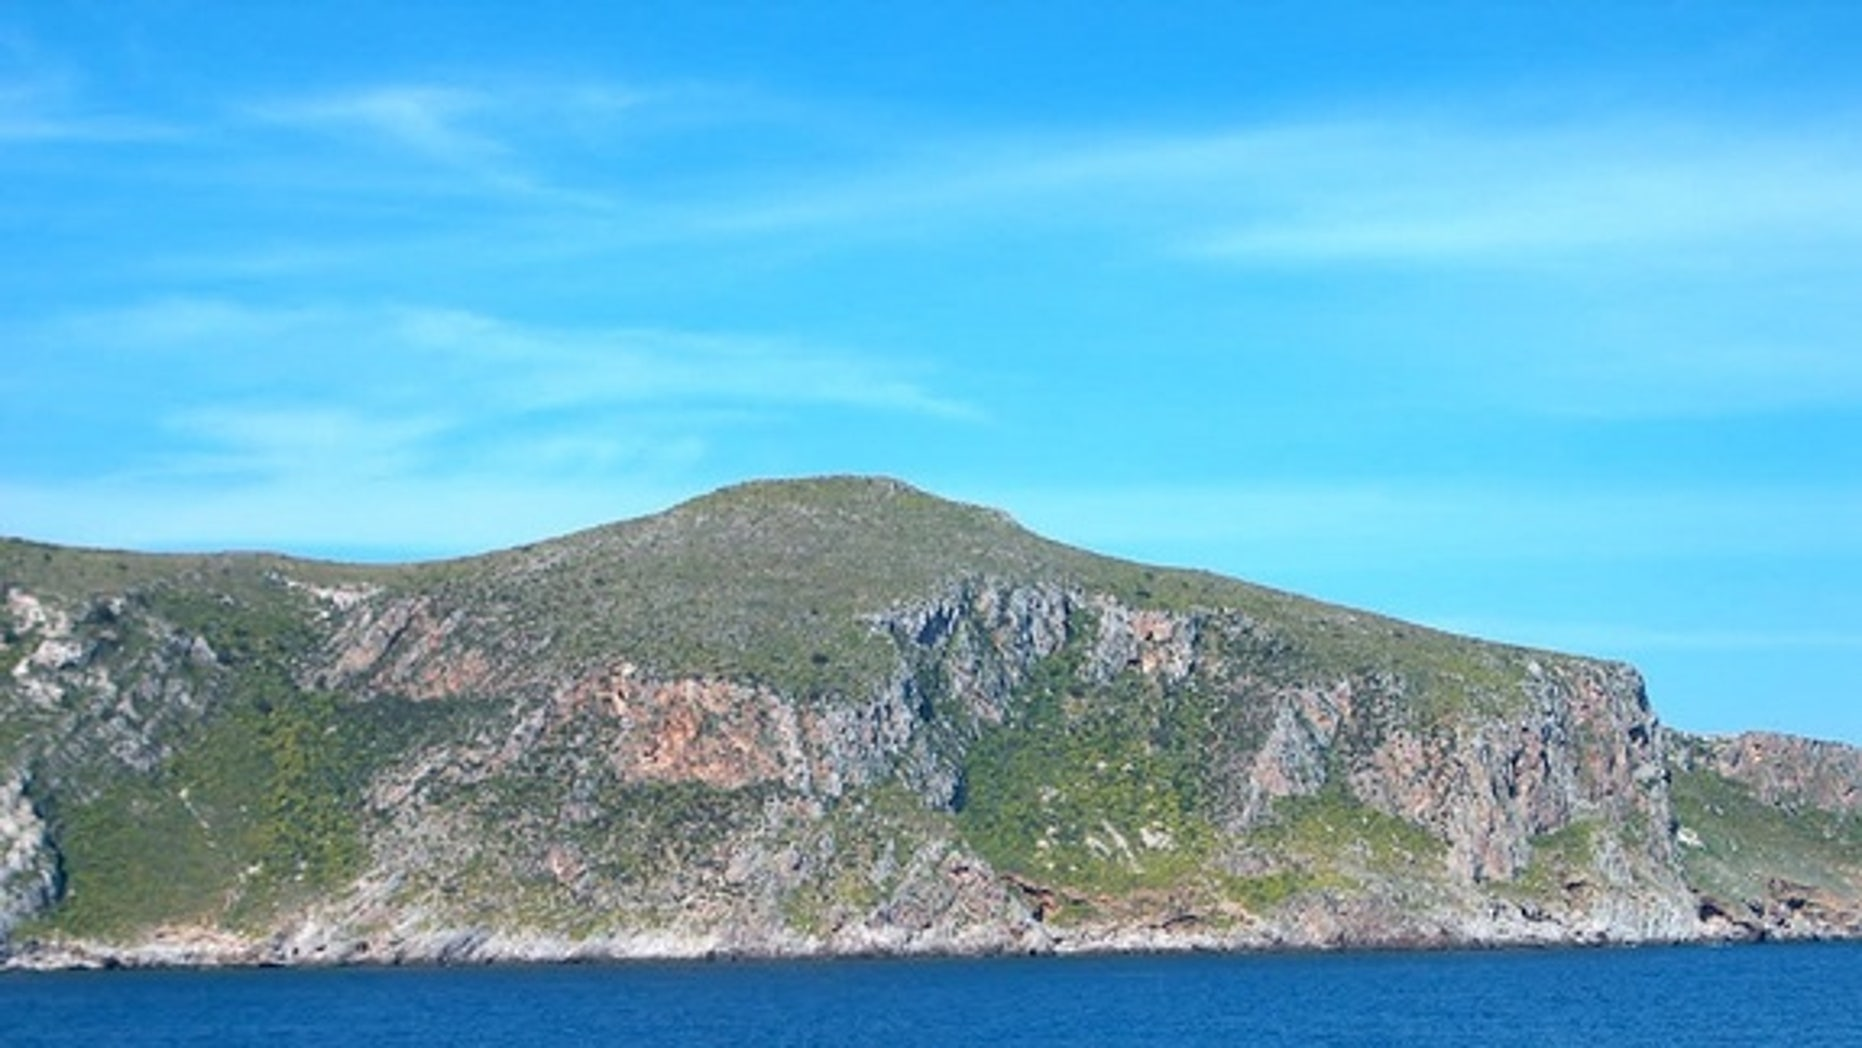 The island of Favignana near Sicily, where remains of early Mediterranean settlers were found in a cave.